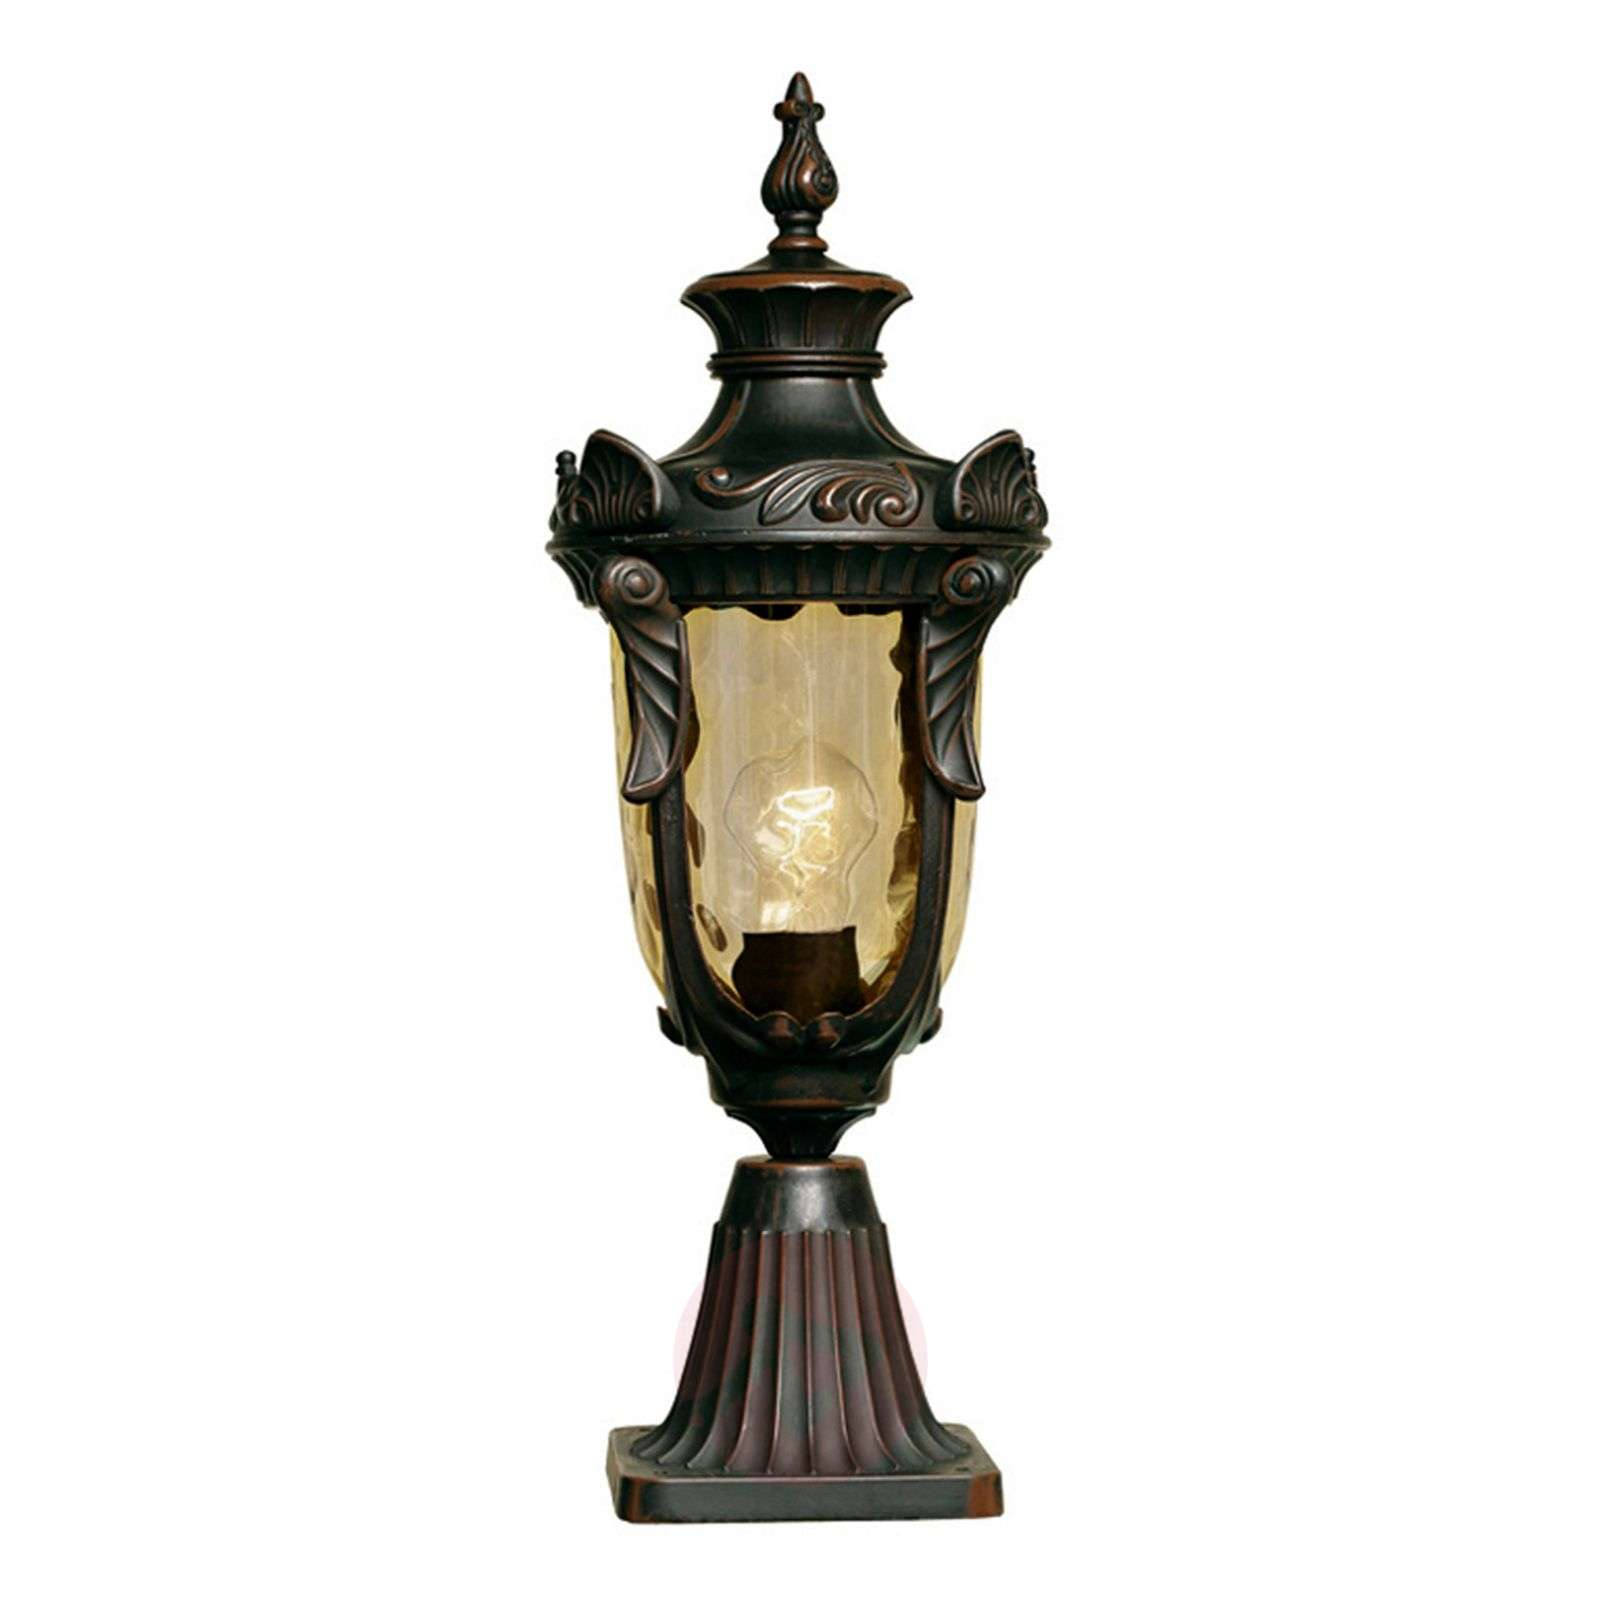 Philadelphia Pillar Light in a Historical Design-3048181-01